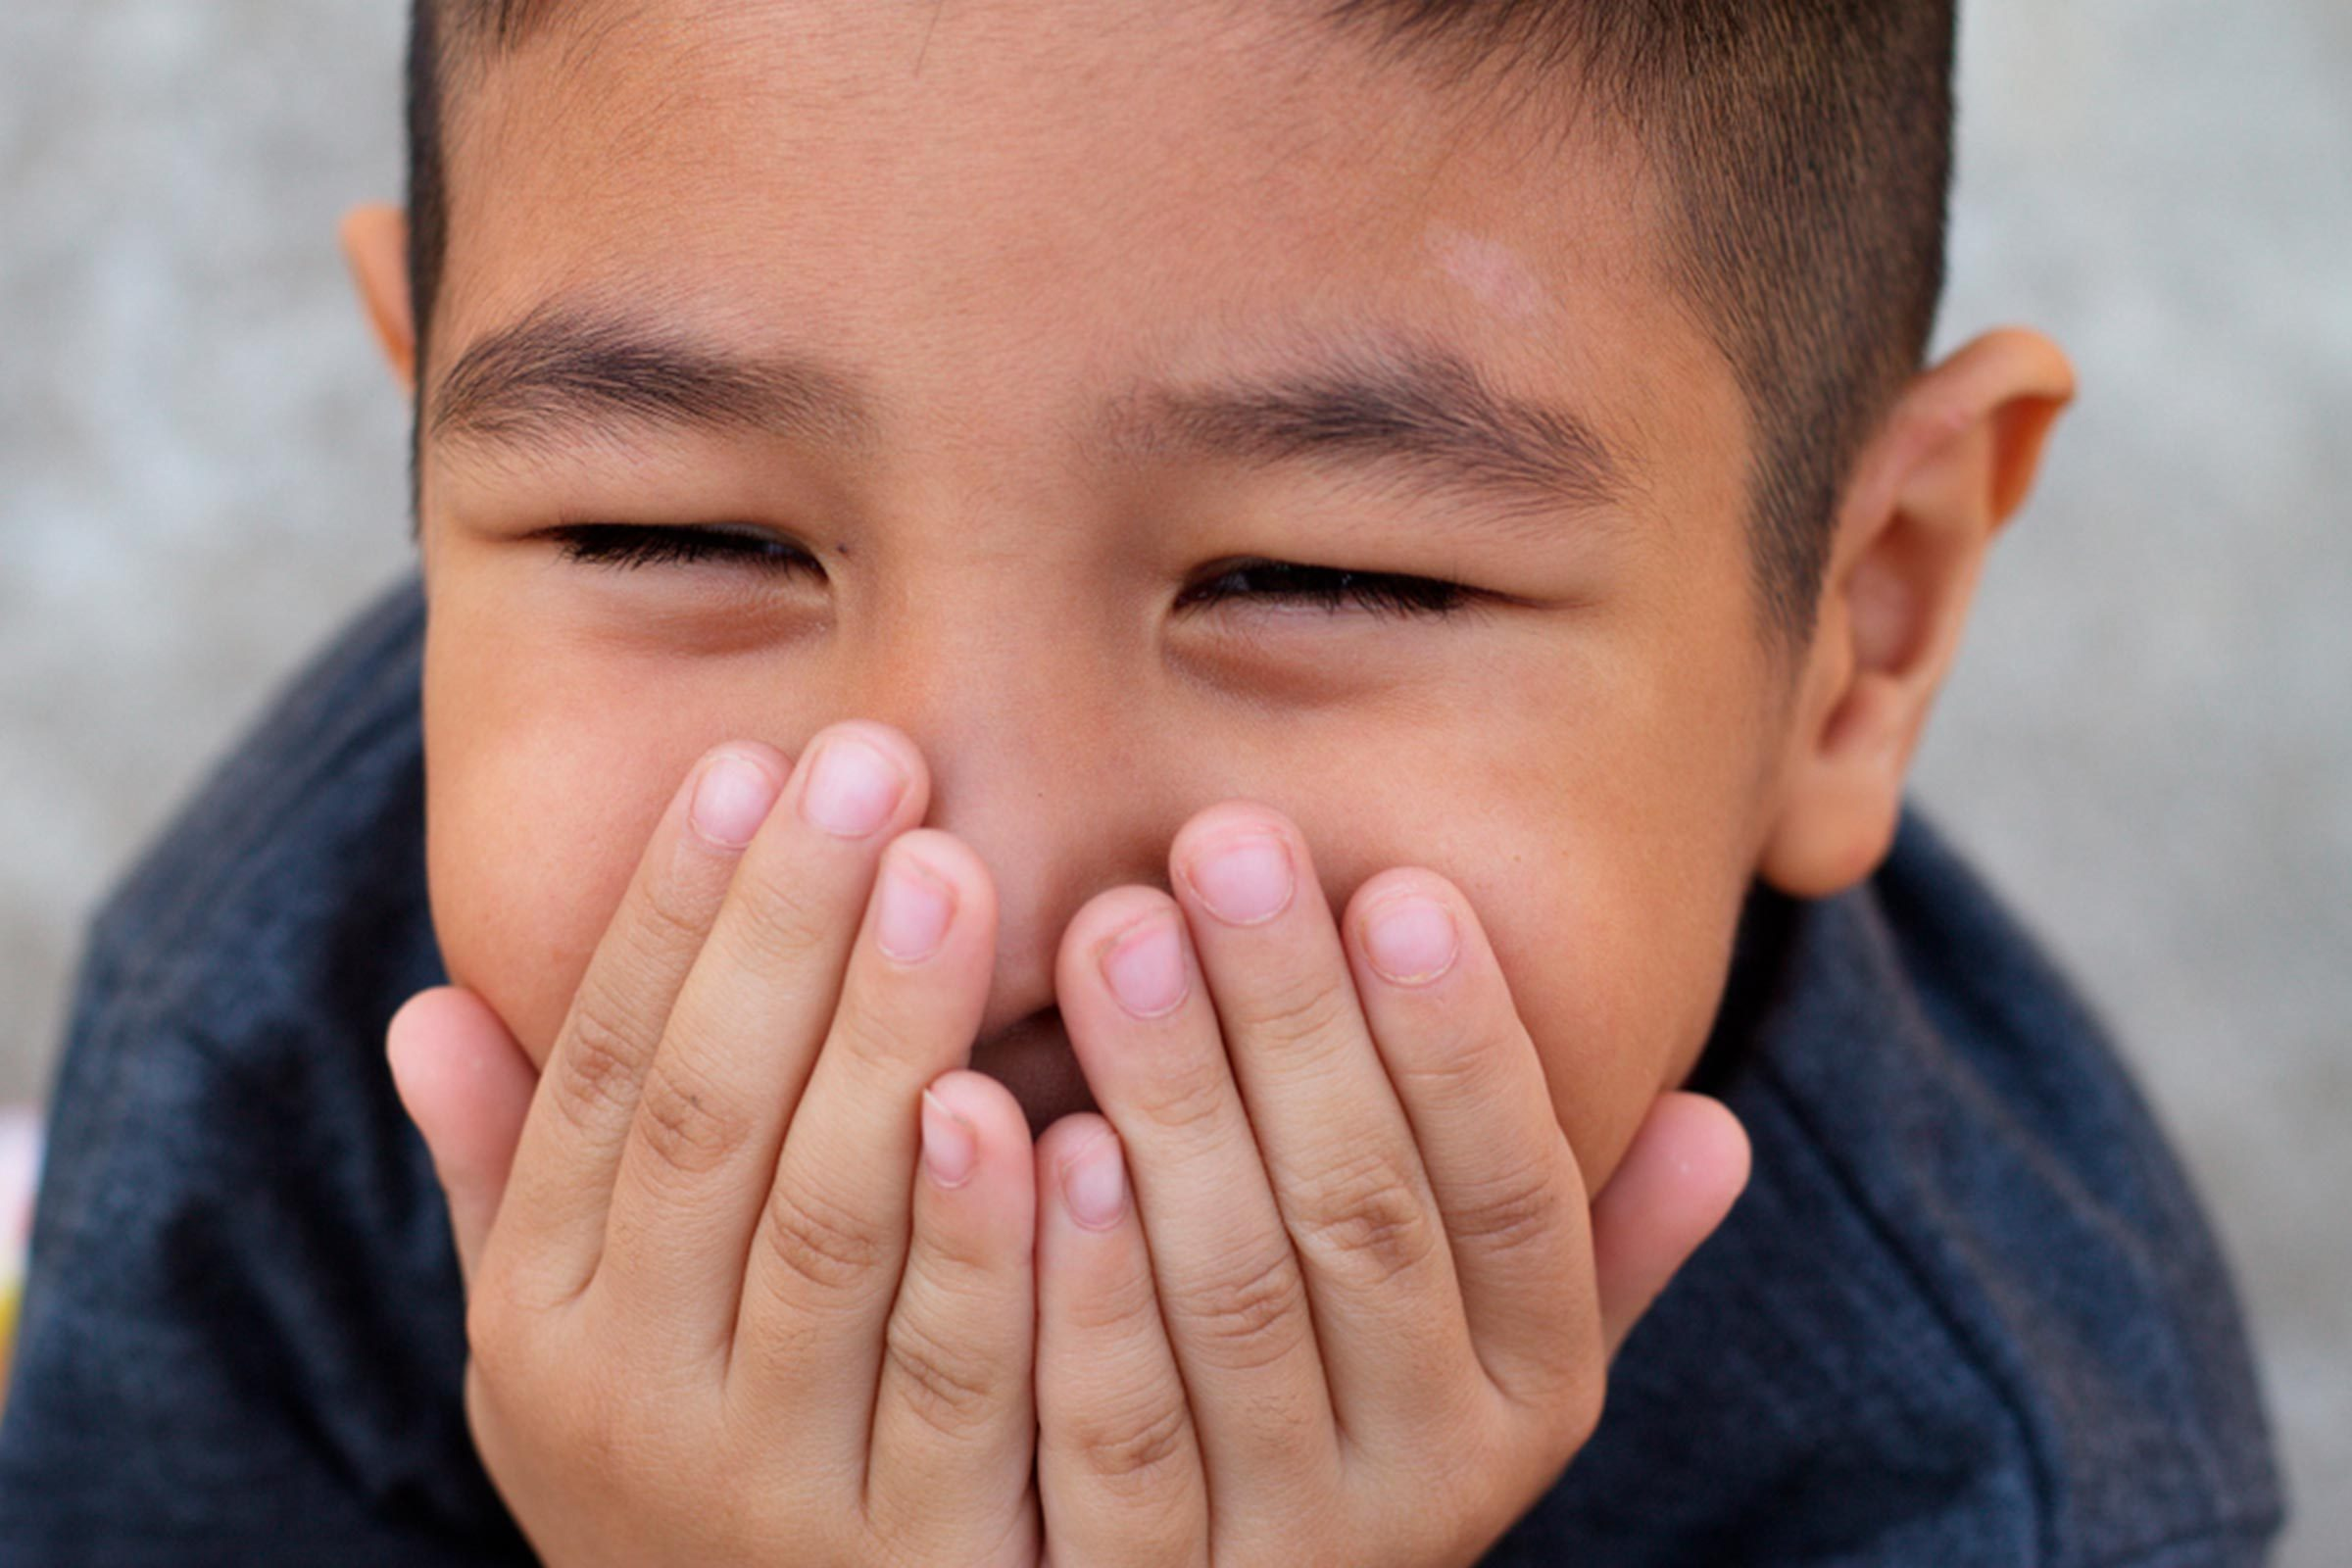 Boy covering mouth